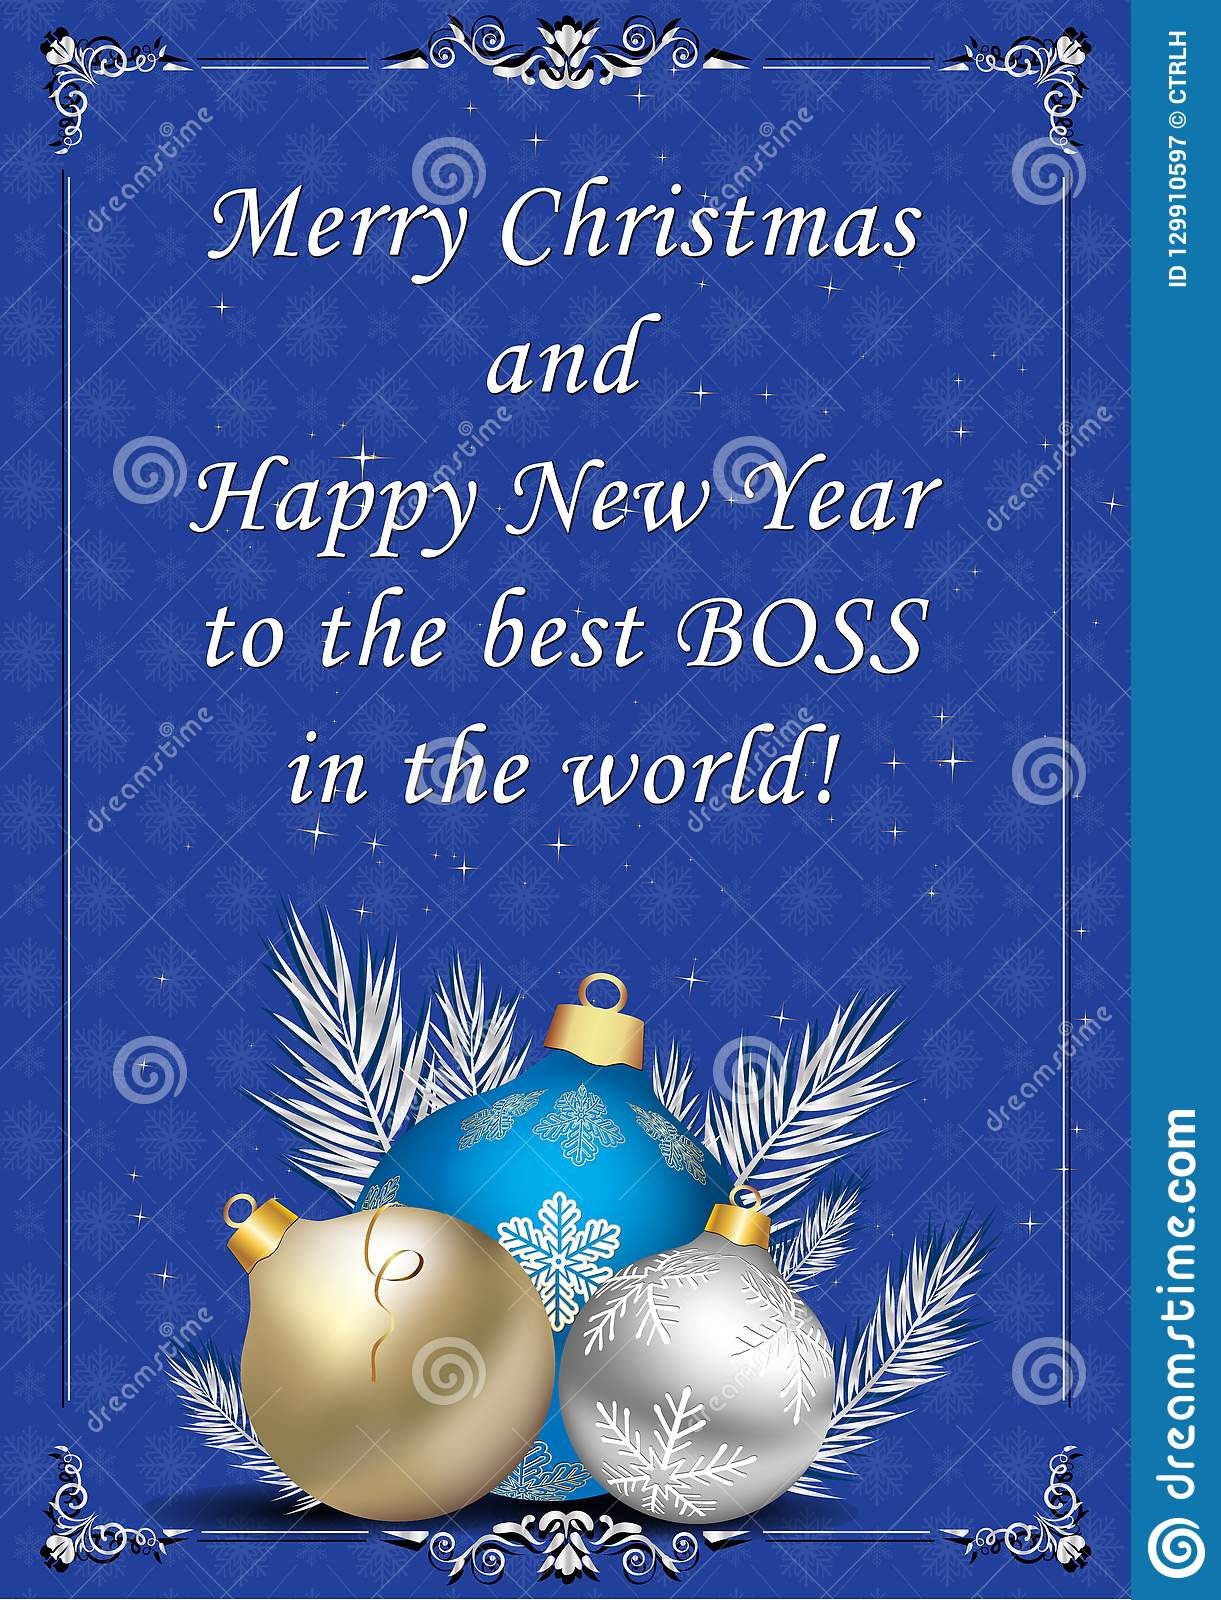 christmas and new year greeting card for the boss